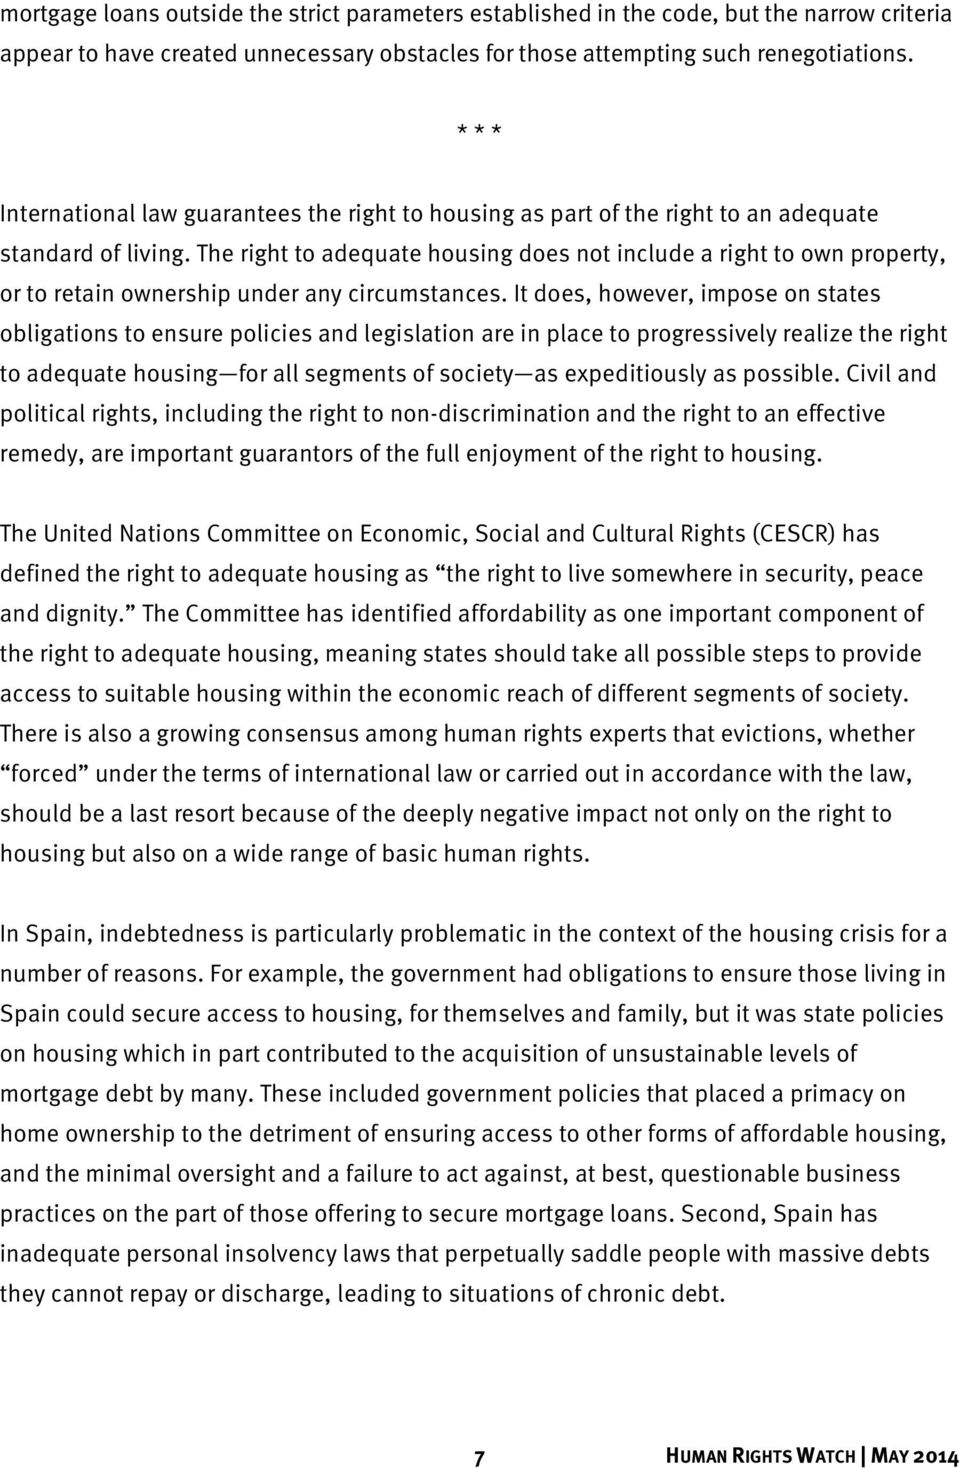 The right to adequate housing does not include a right to own property, or to retain ownership under any circumstances.